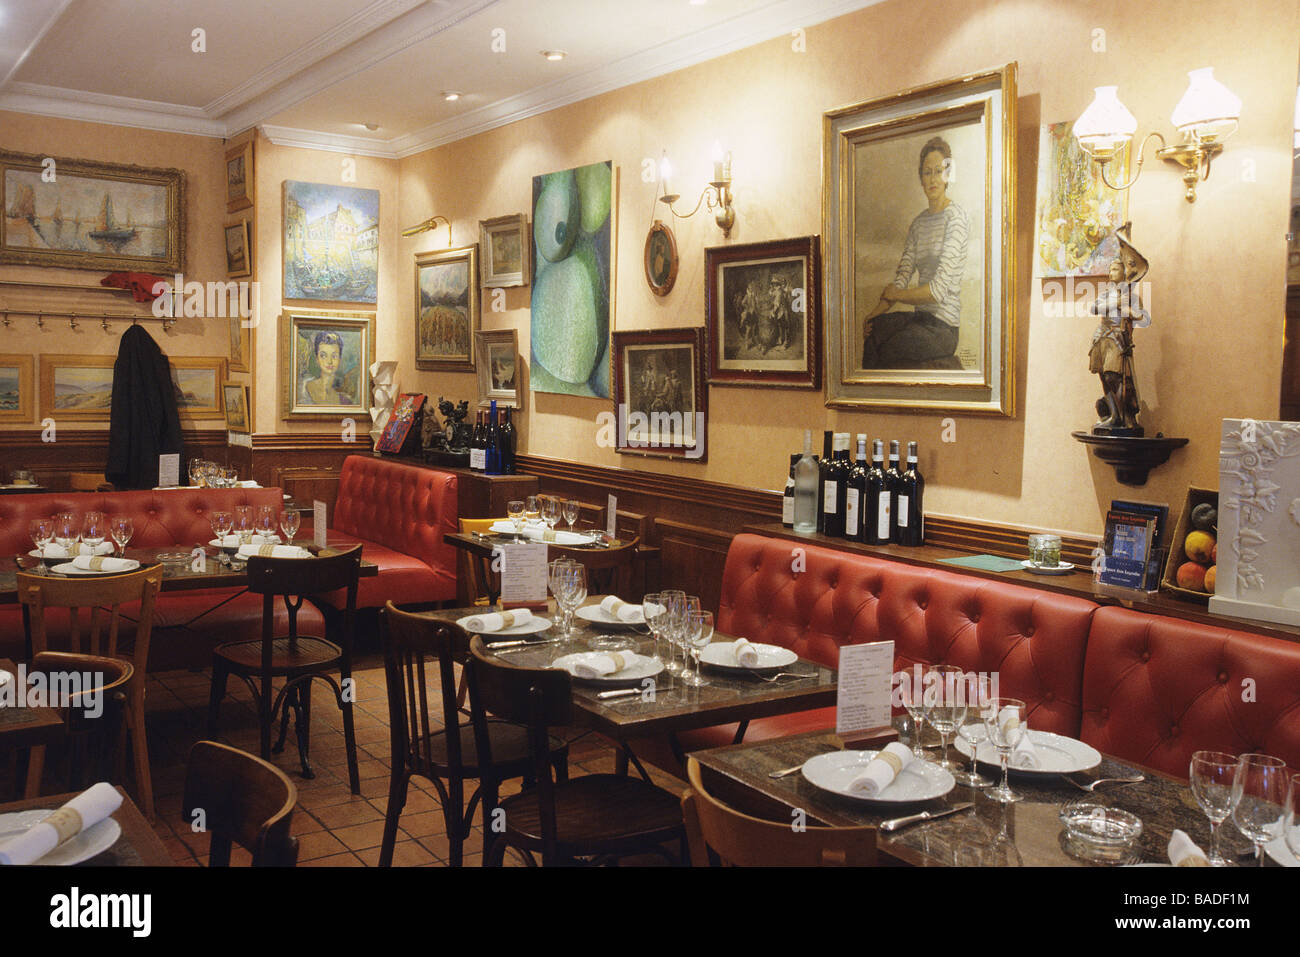 France Oise Compiegne The Dining Room Of Yve Mejeans Restaurant Le Bistrot Des Arts